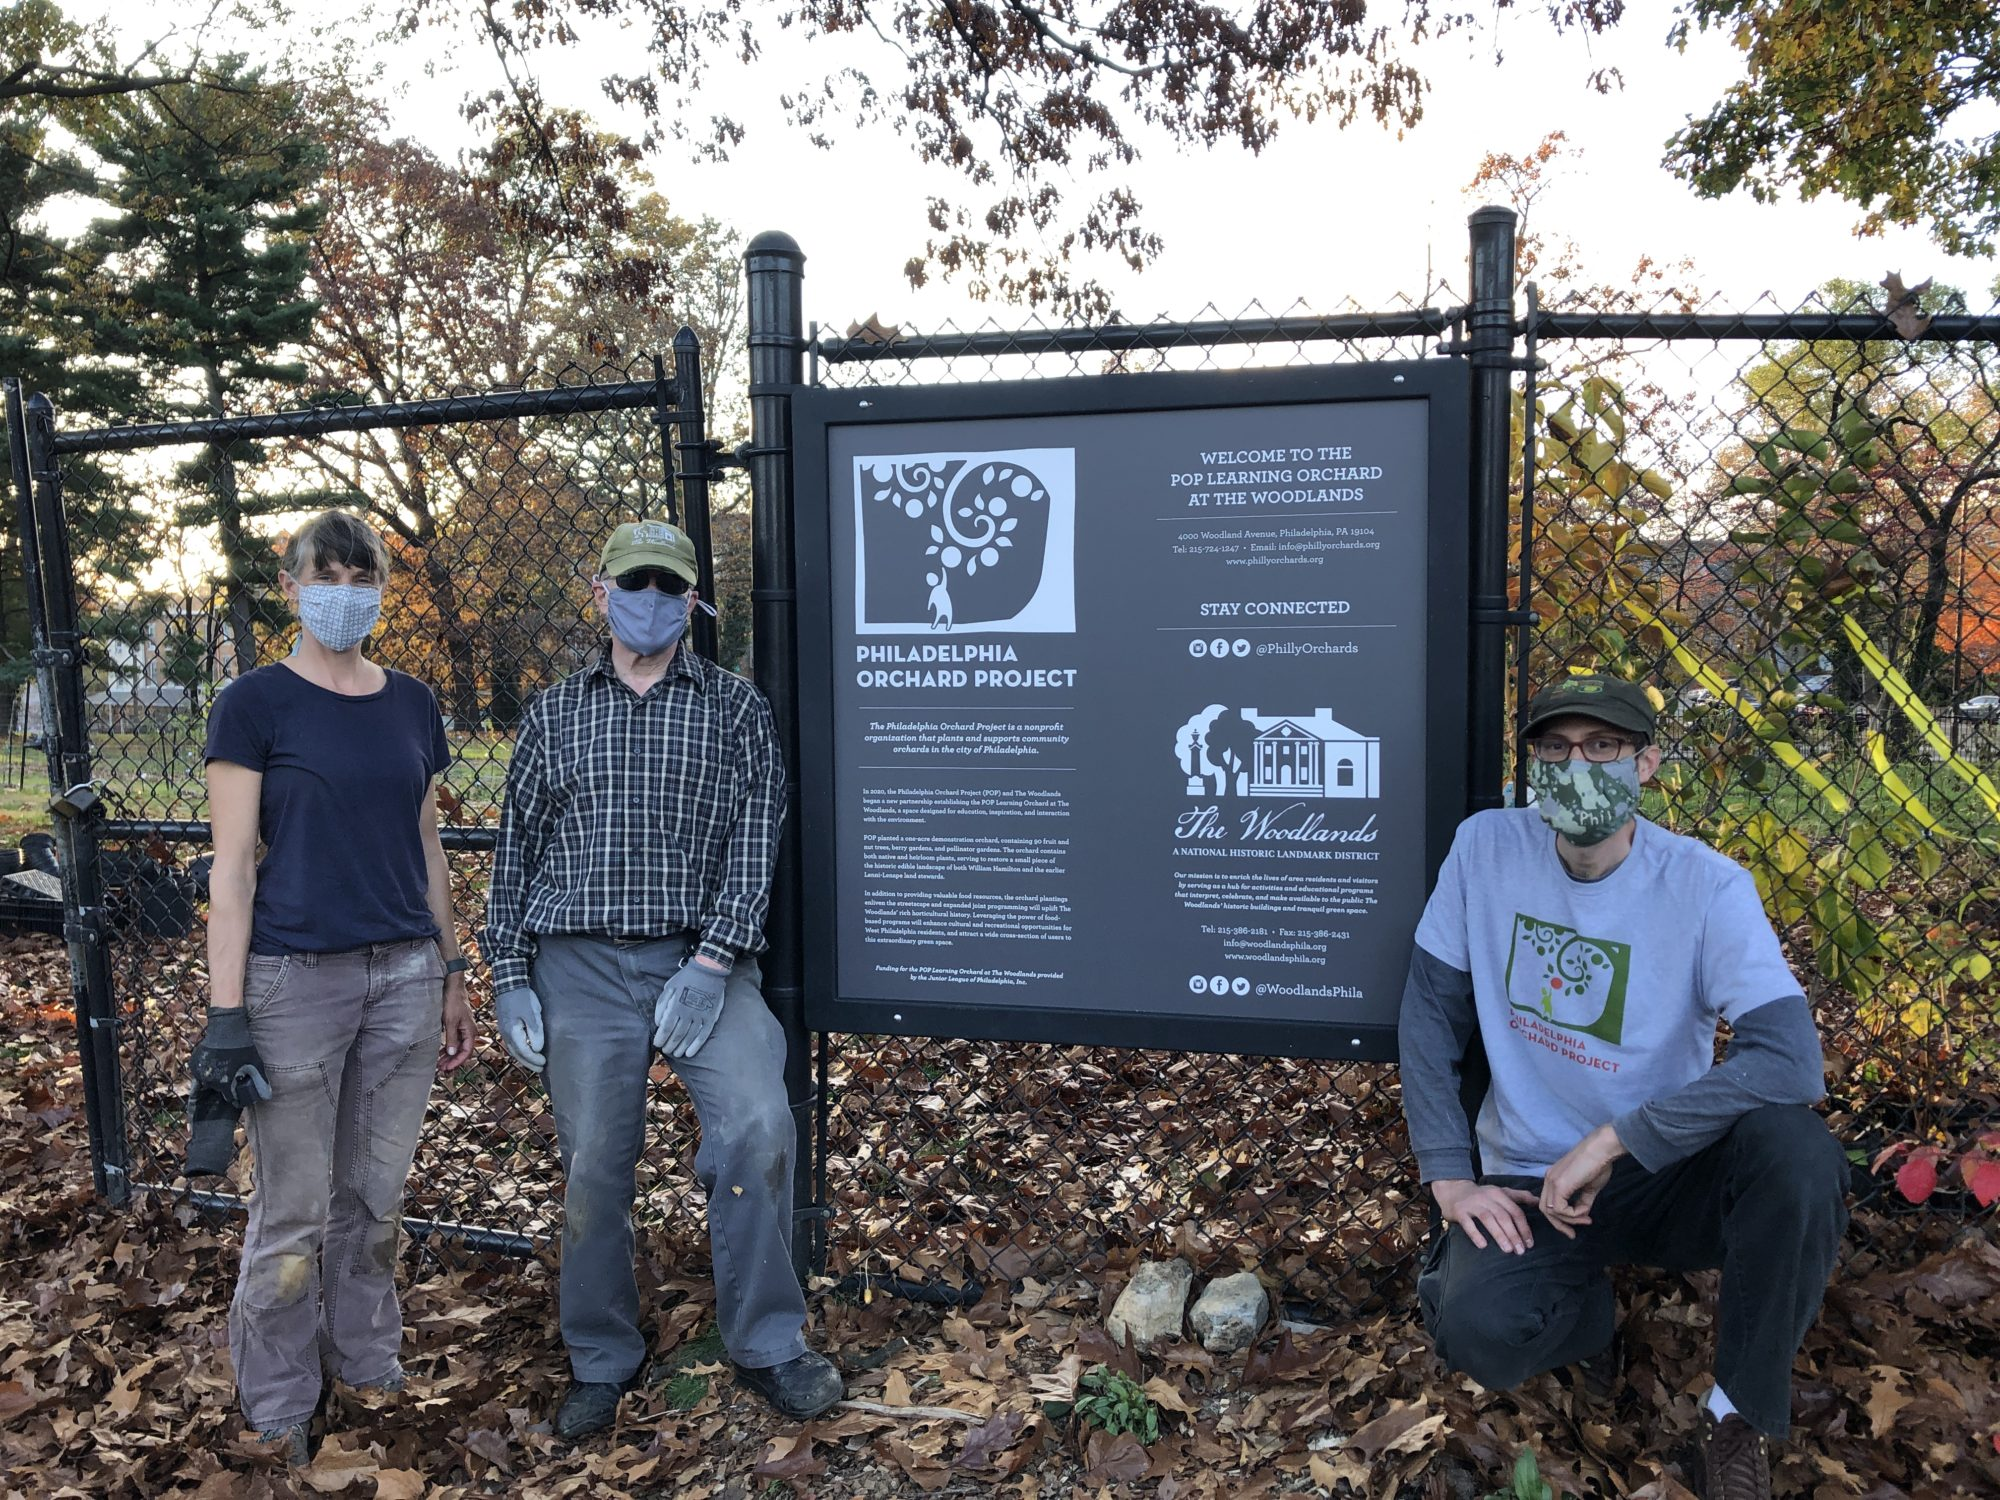 Woodlands Facilities & Landscape Manager Robin Rick, volunteer Joe Shapiro, and POP Co-Director Phil Forsyth at the new sign installed at the POP Learning Orchard entrance in November 2020.